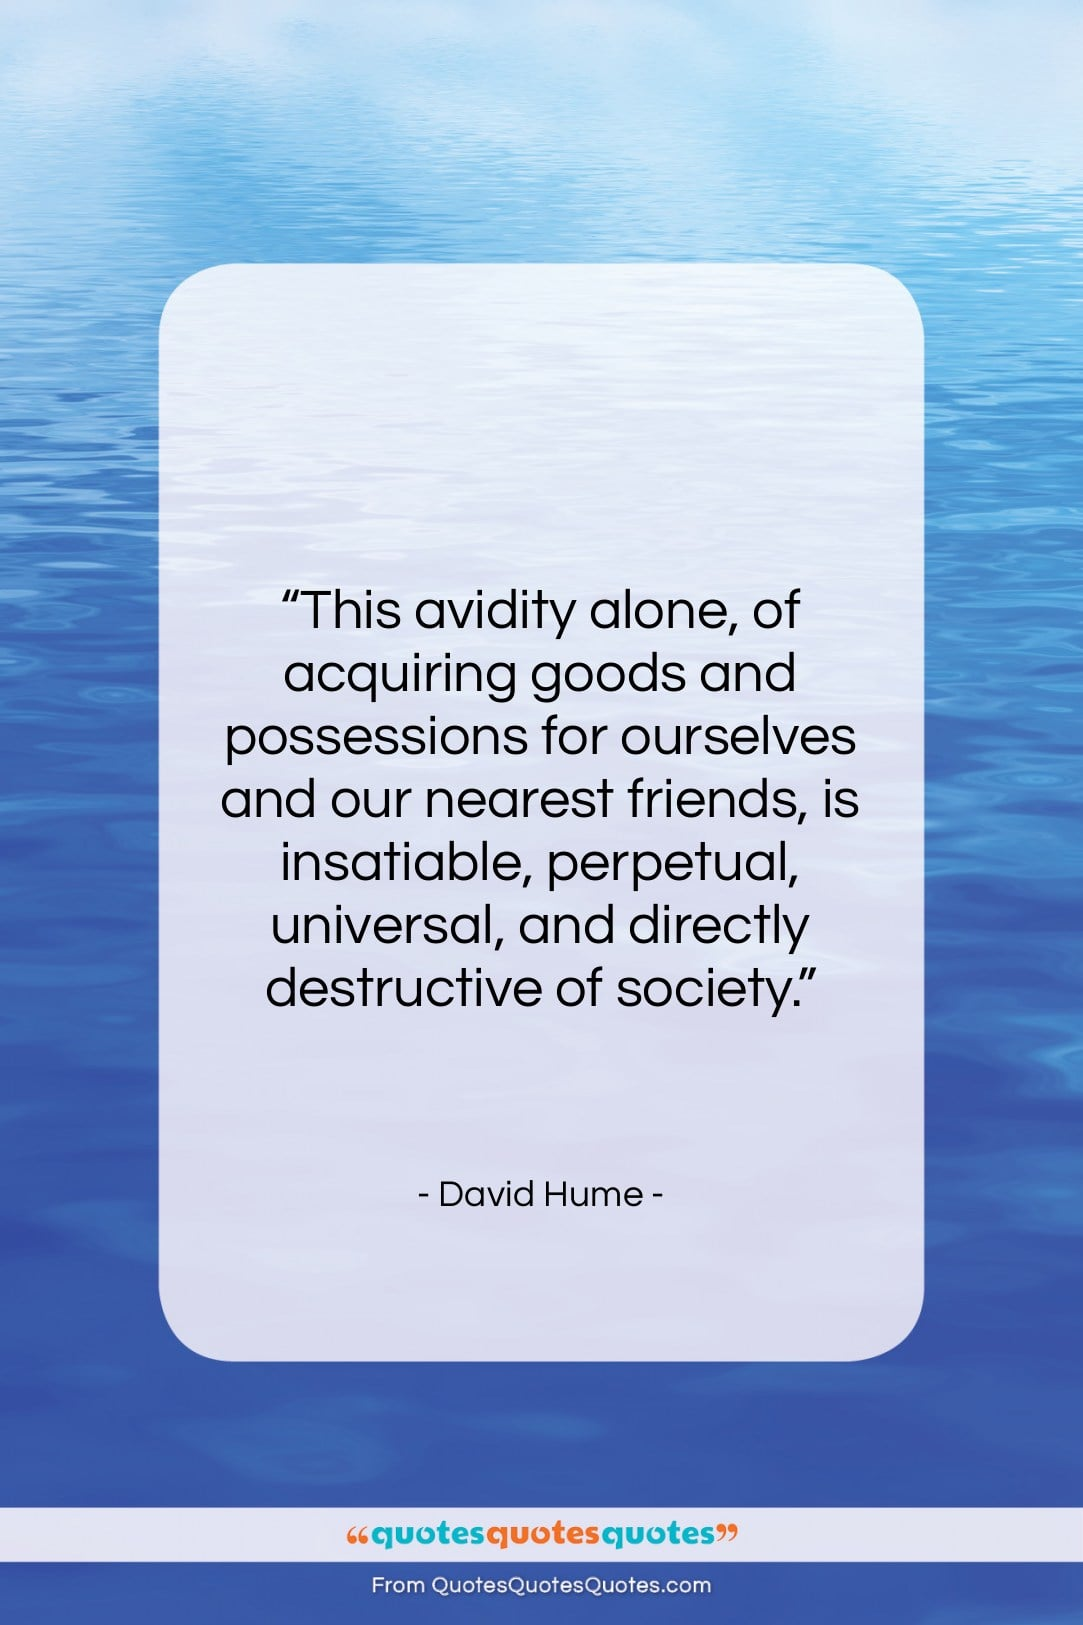 """David Hume quote: """"This avidity alone, of acquiring goods and…""""- at QuotesQuotesQuotes.com"""